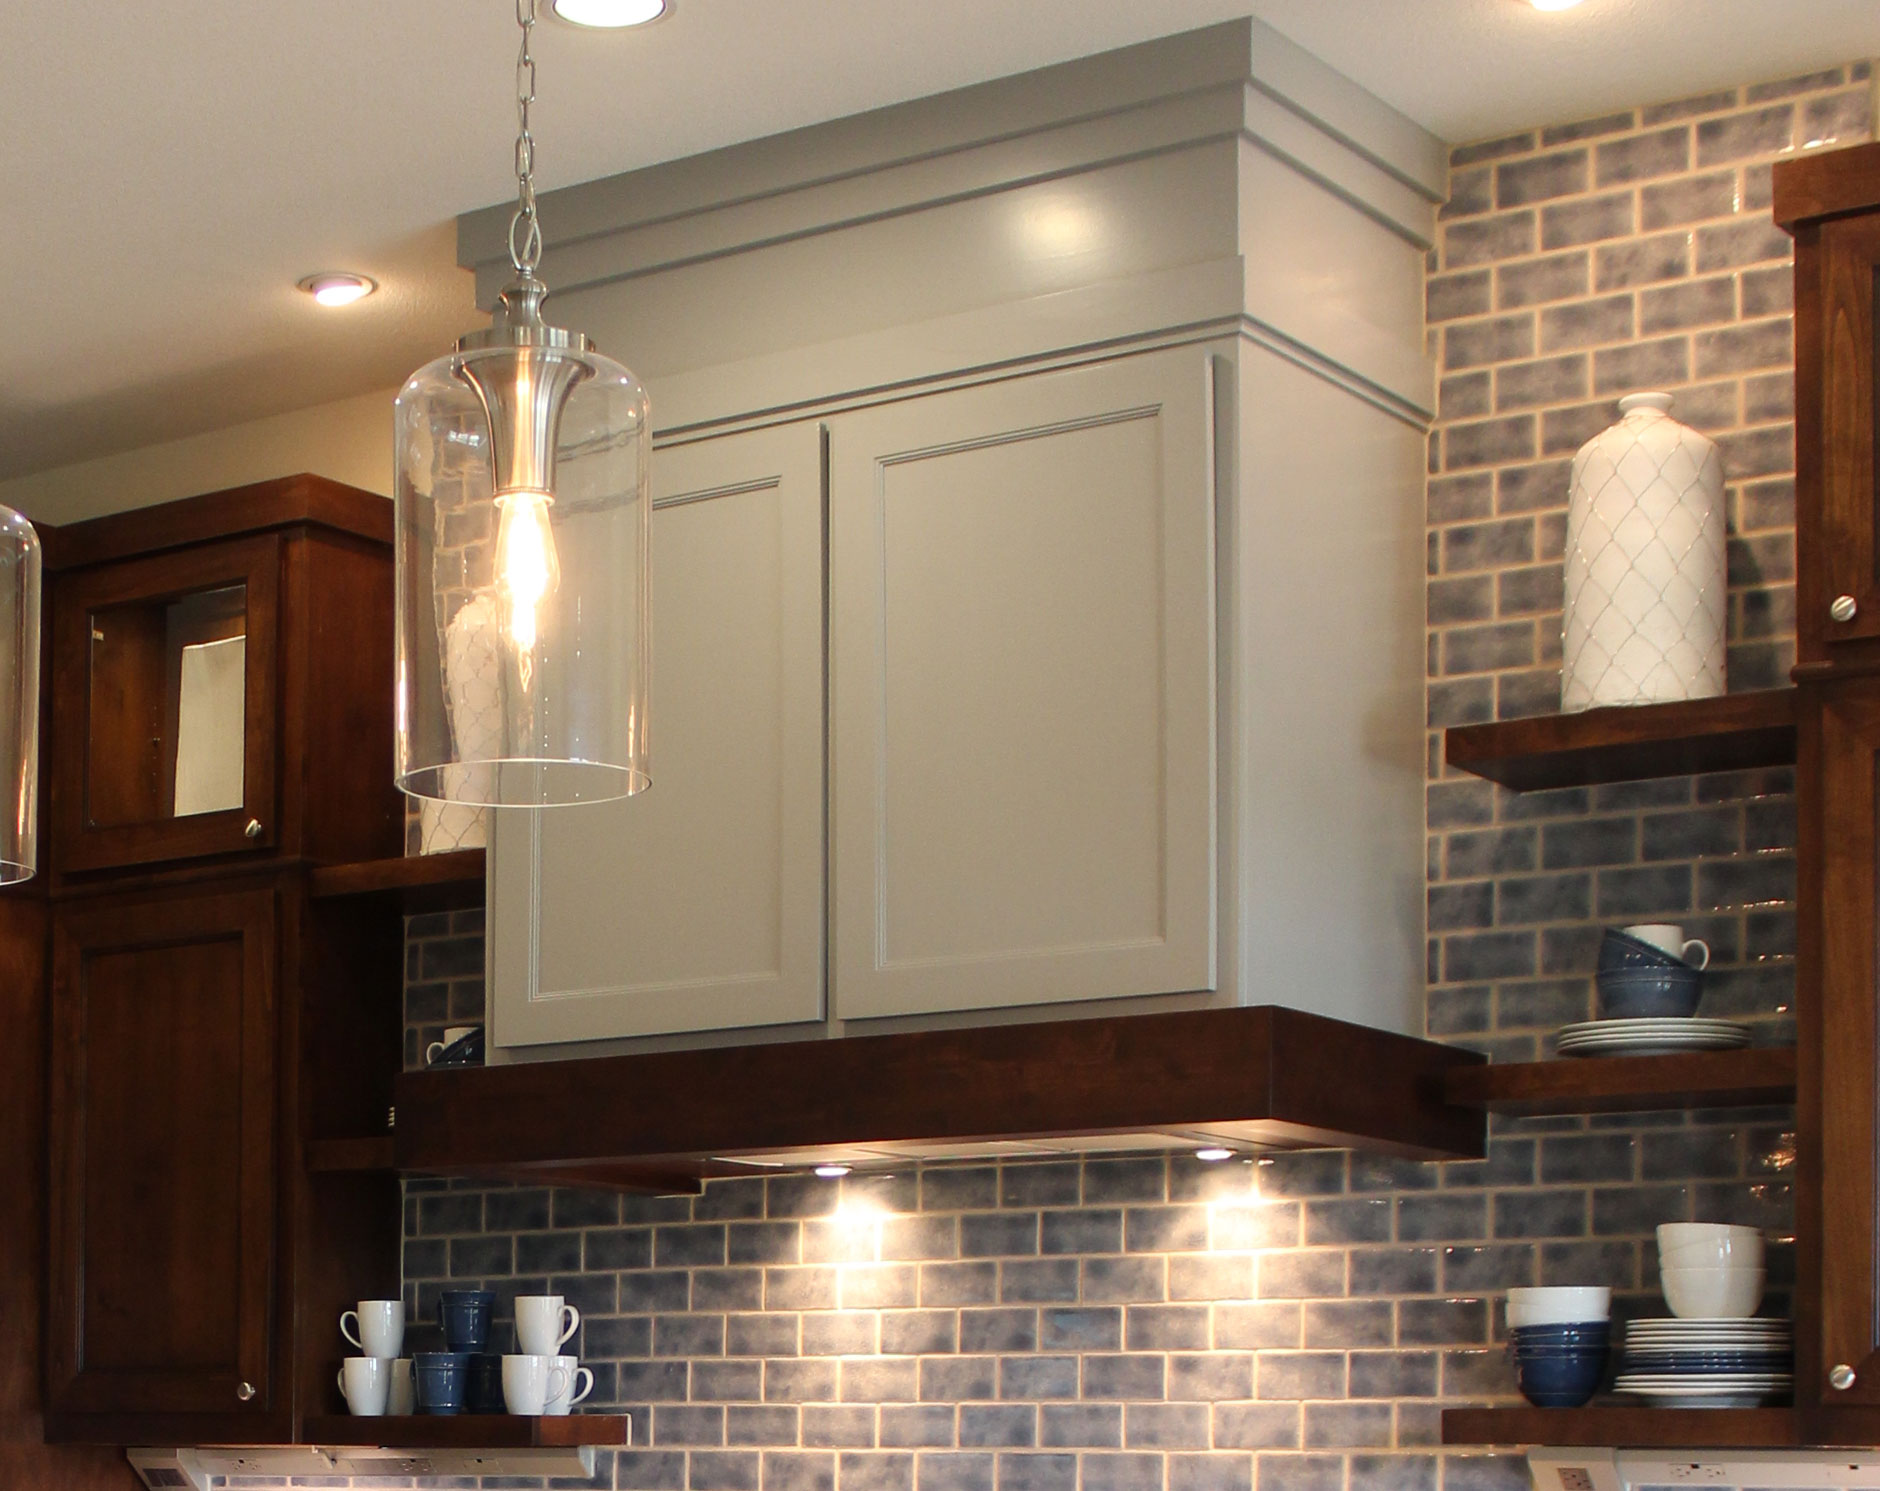 hickory shaker style kitchen cabinets melissa & doug vent hood - craftsman burrows central texas ...